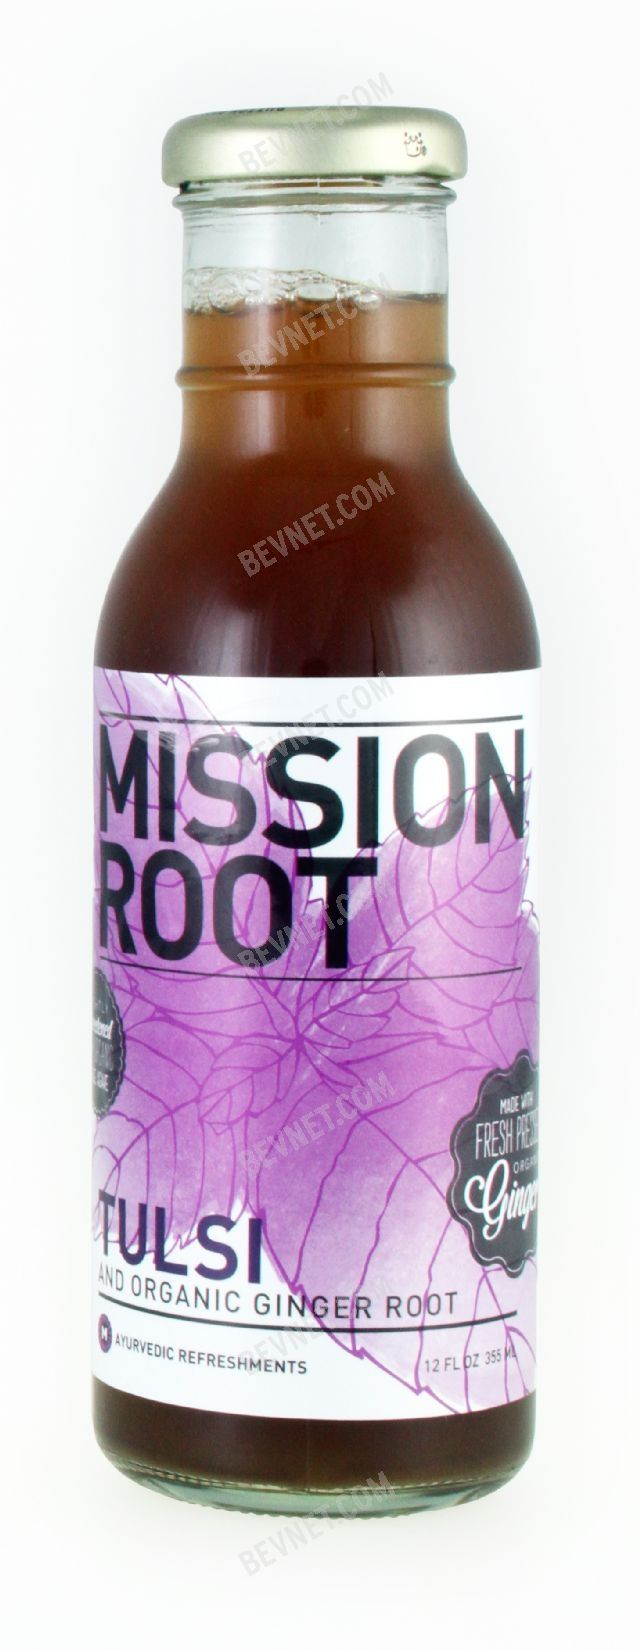 Mission Root: